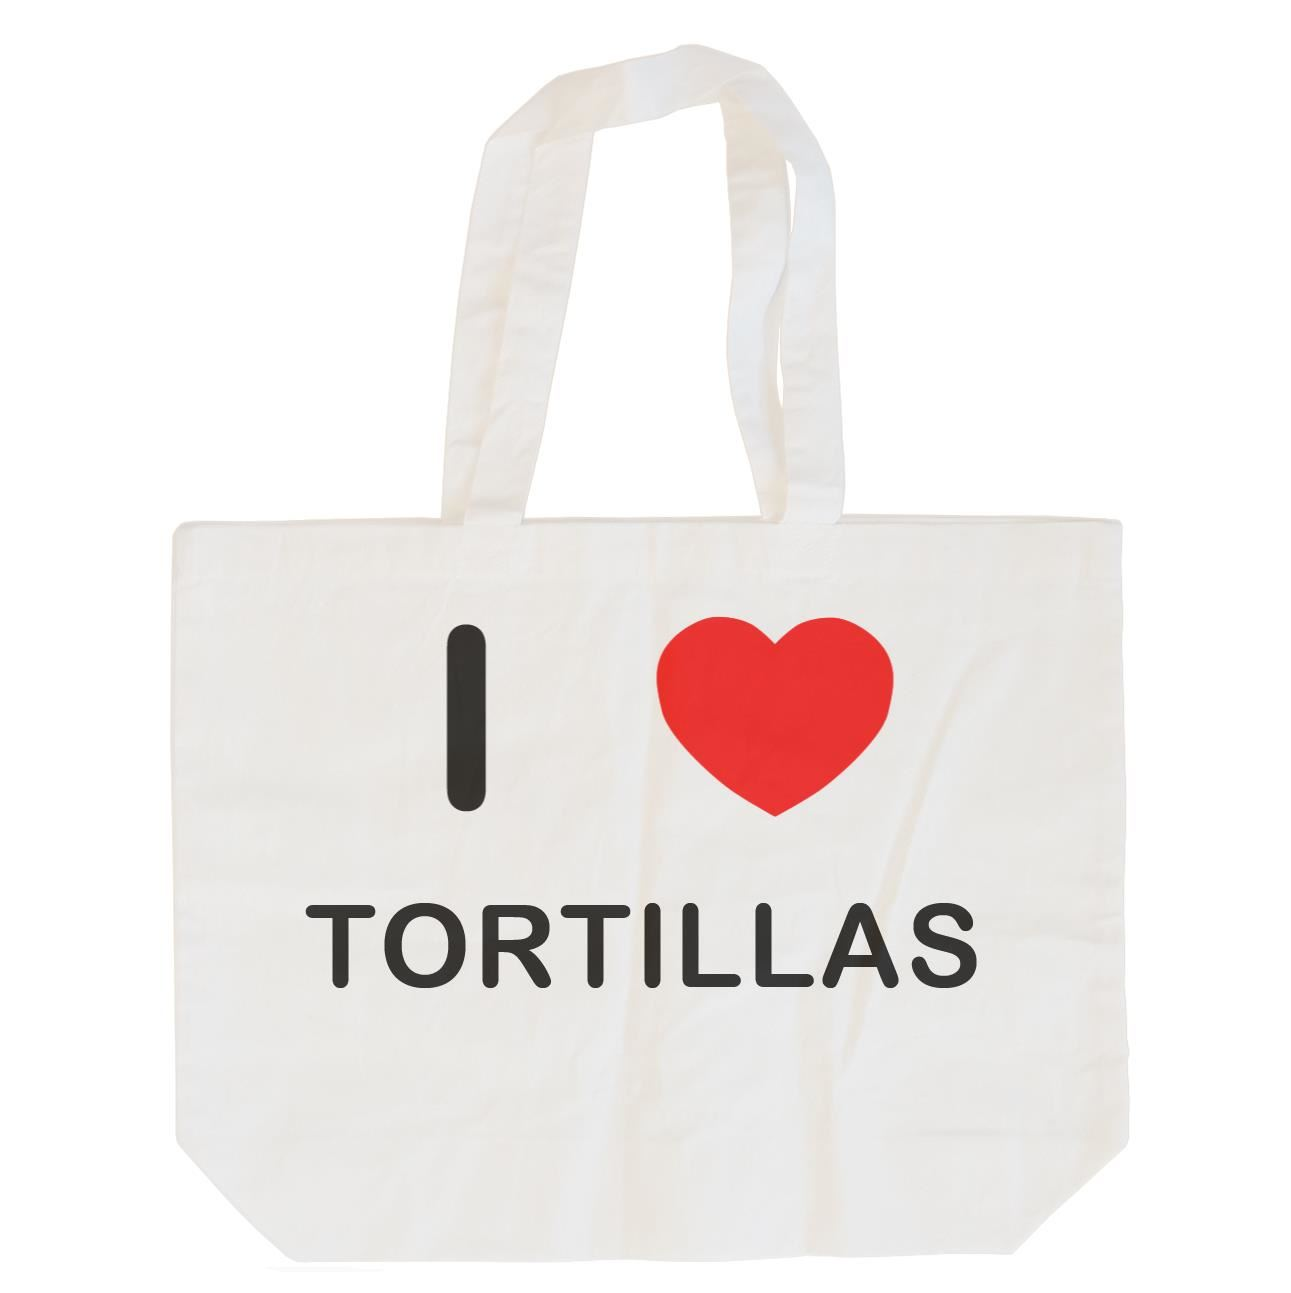 I Love Tortillas - Cotton Bag | Size choice Tote, Shopper or Sling